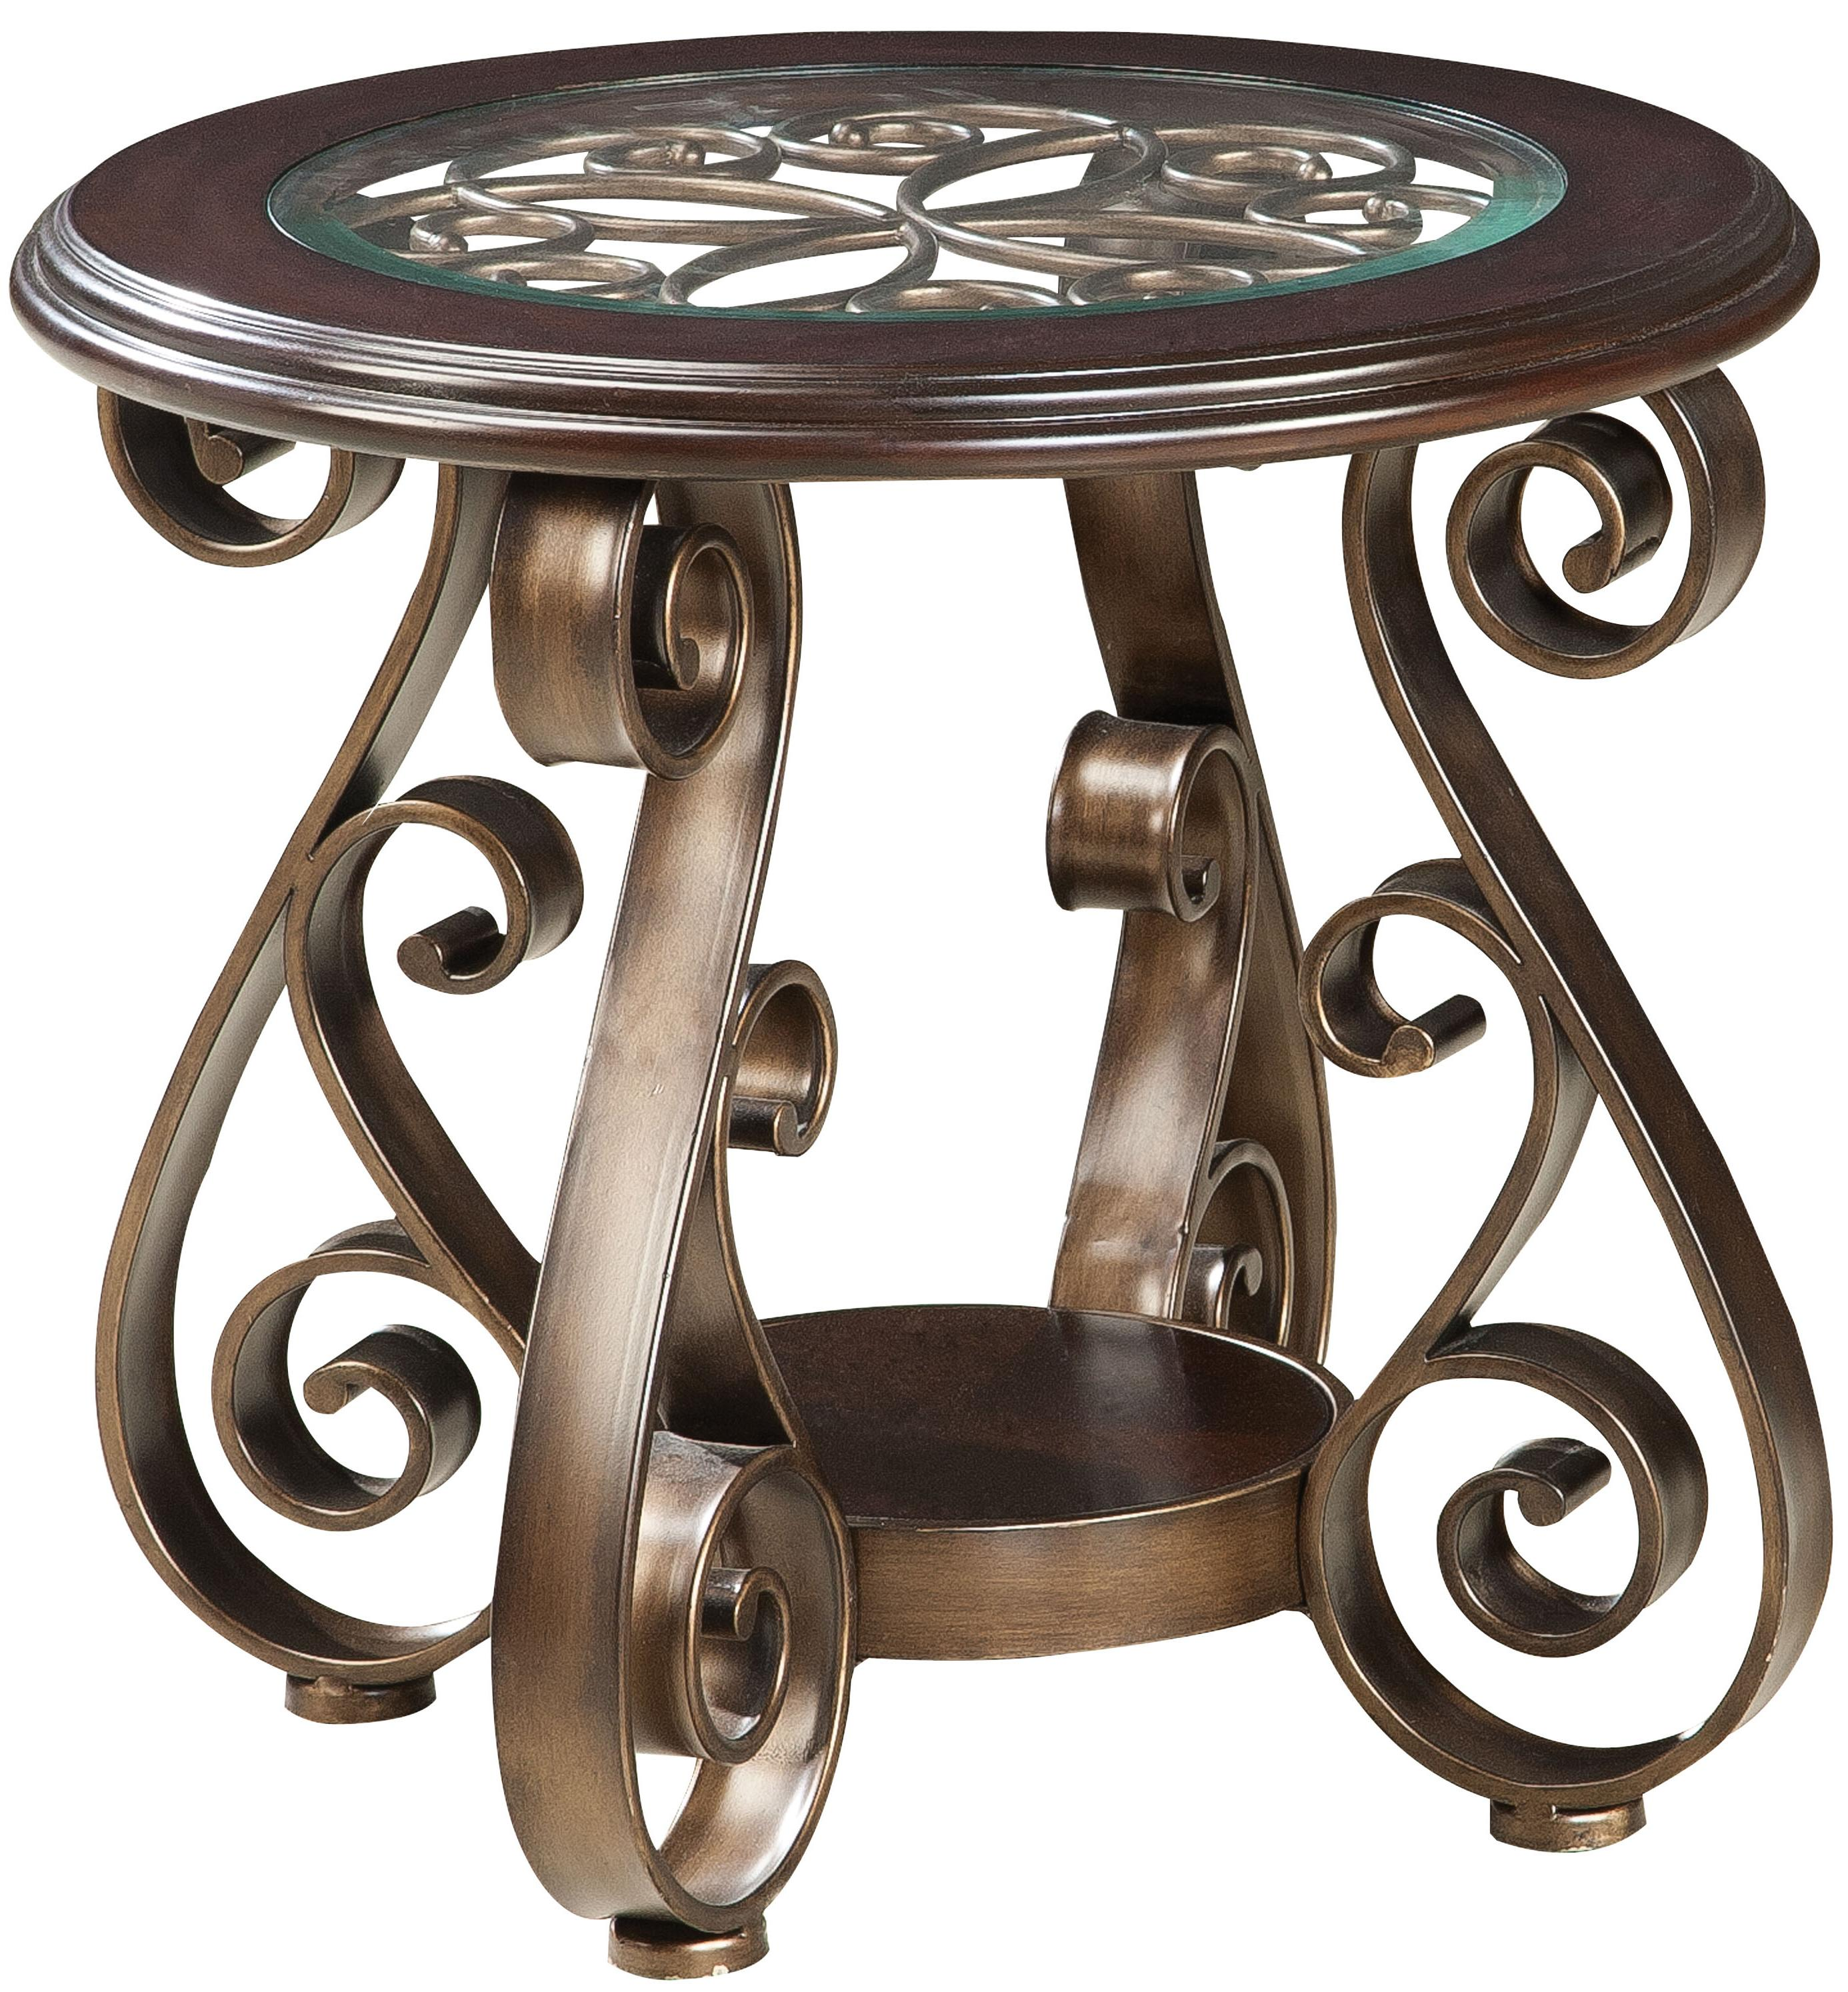 Old World End Table With Glass Top And S Scroll Legs By Standard Furniture Wolf And Gardiner